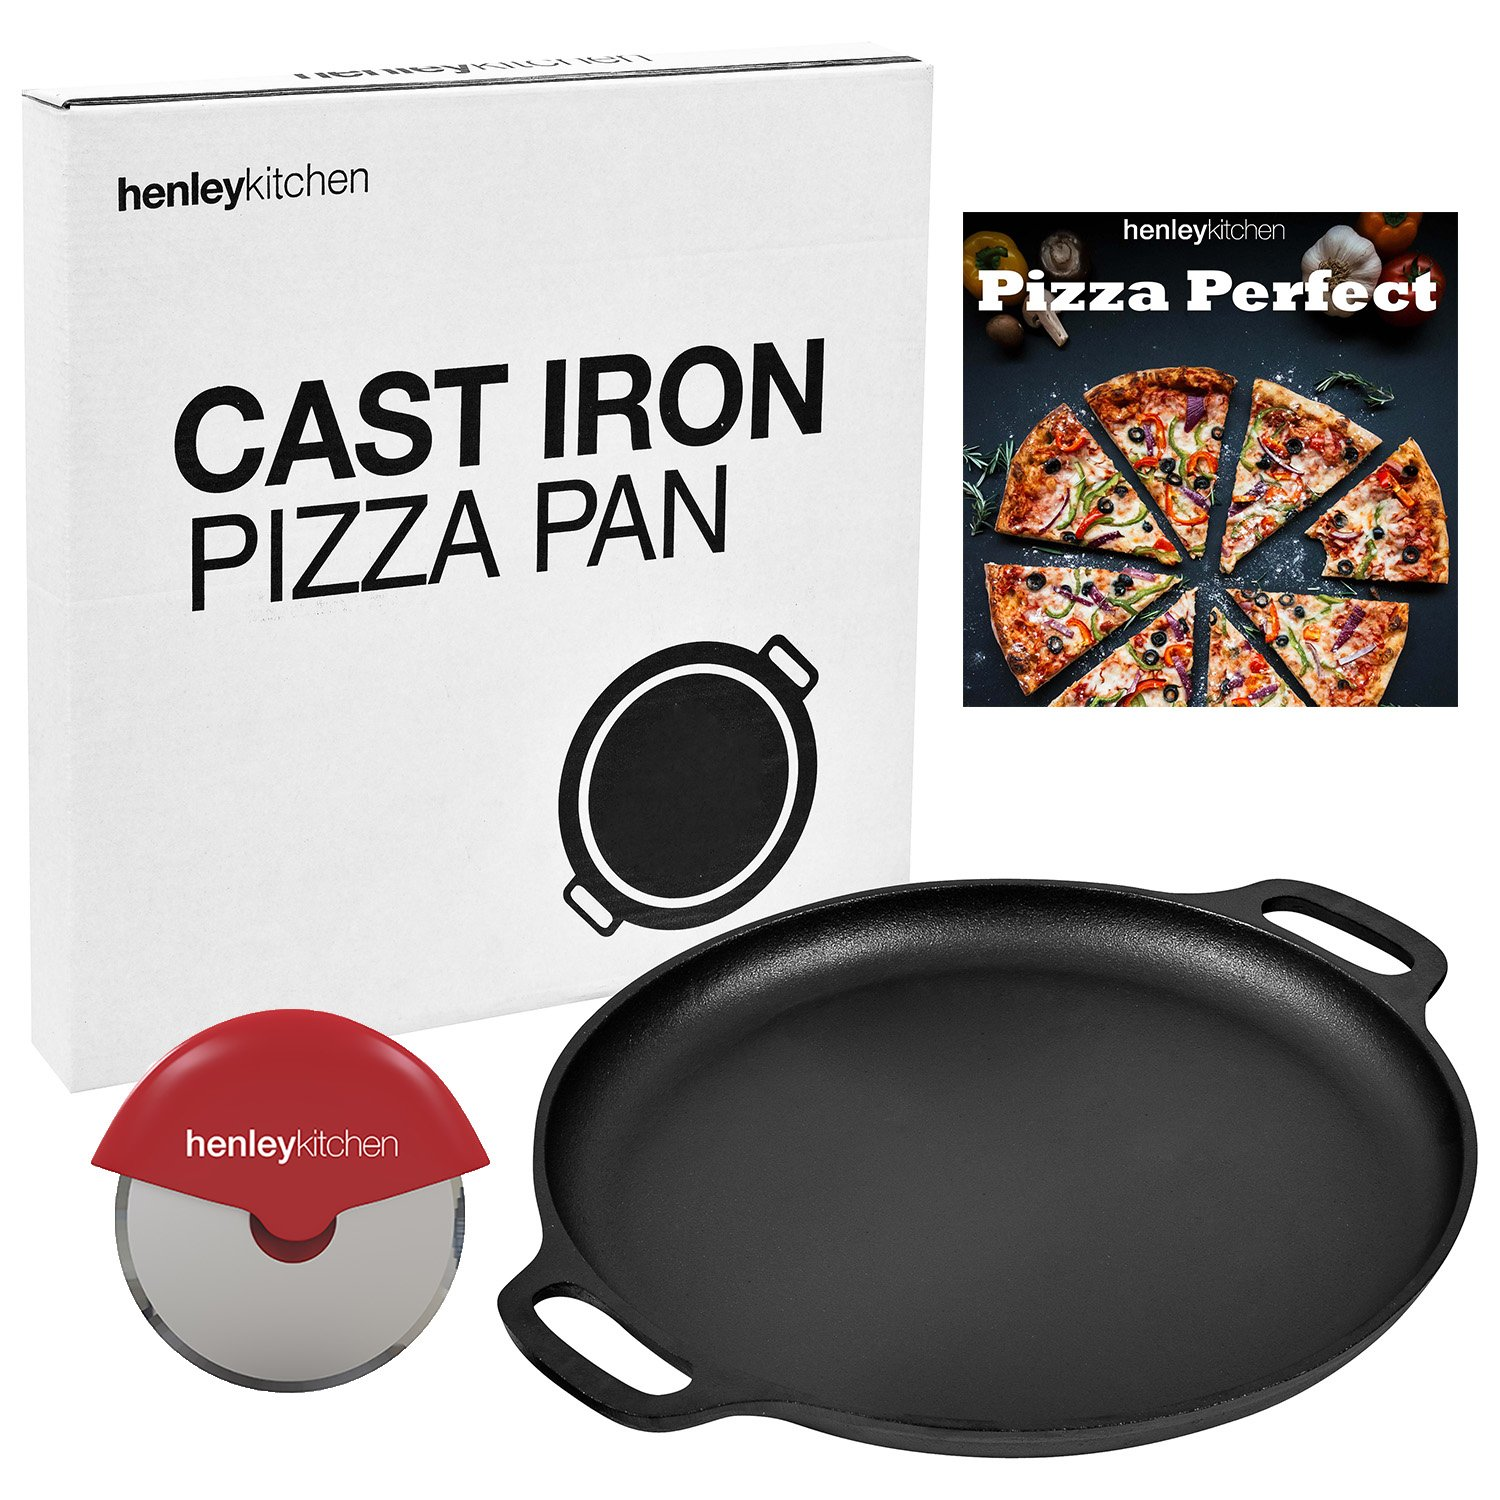 Henley Kitchen - Pre-Seasoned Cast Iron Pizza Pan - 14 Inch Pizza Stone with Cutter and Cookbook eBook